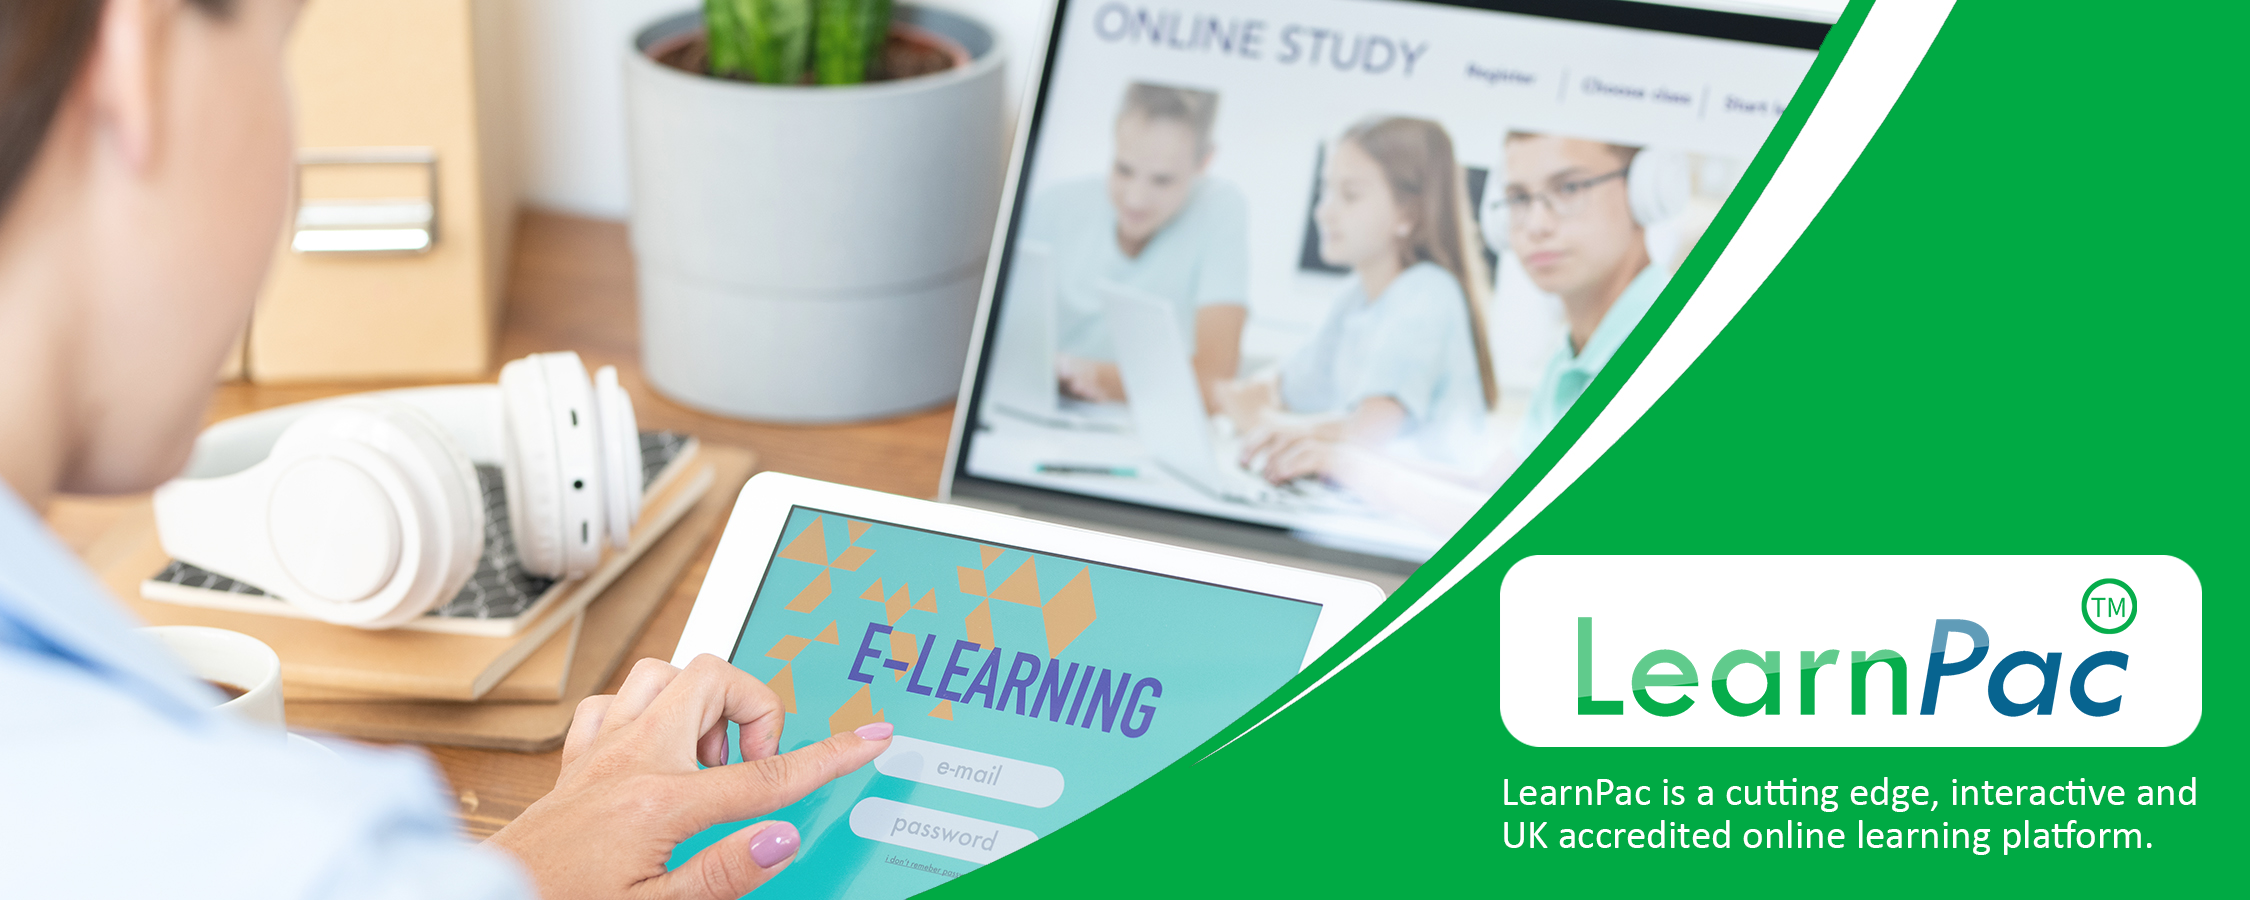 Care Certificate Standard 15 - E-Learning Courses - LearnPac Systems UK -